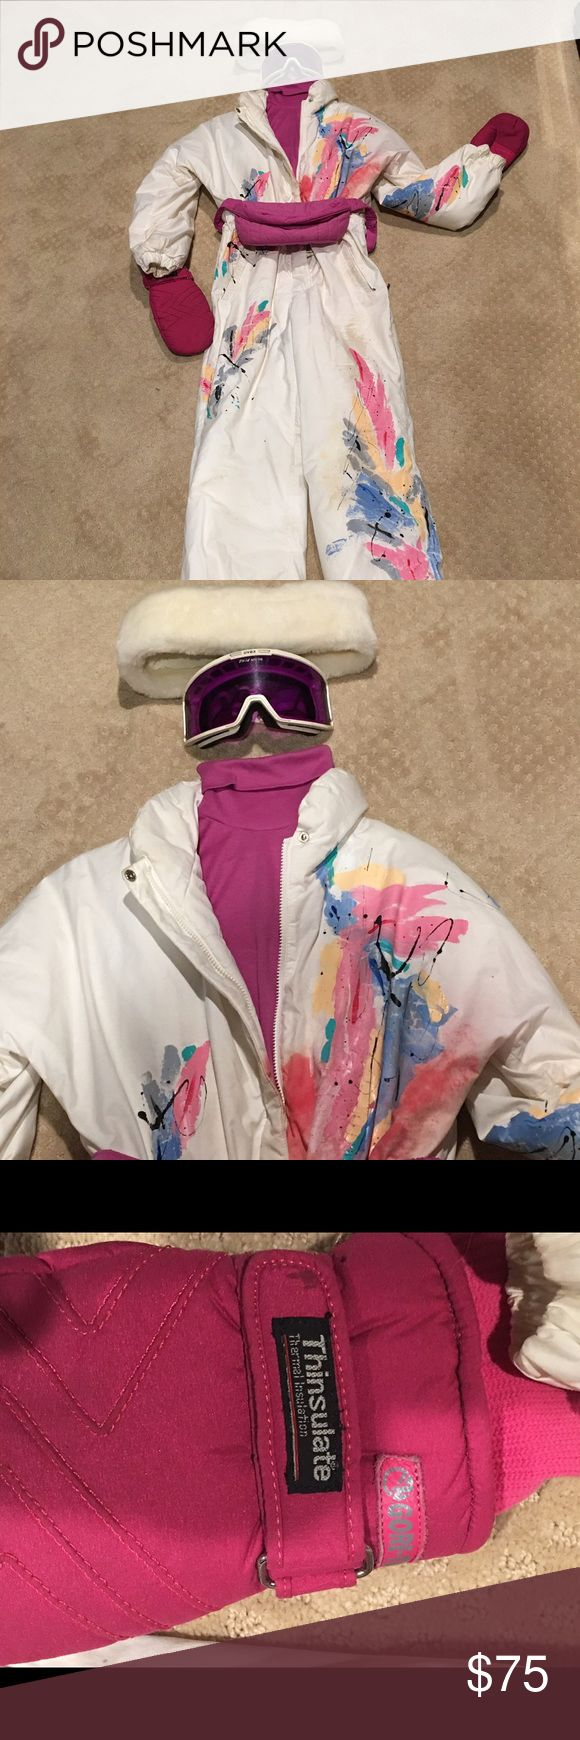 6 piece Ski suit pkg deal Ok so now your REALLY ready to go skiing with this complete ski set. SALOM Hand painted jumpsuit. Size 10. Hot pink cotton turtleneck, THINSULATE Mittens, OBERYYER fanny pack, UVEX purple anti fog goggles, white hat. Need nothing more than your boots and a pass and your ready to go. Easily a $400 pkg deal on sale now! Firm on price. slalom Other